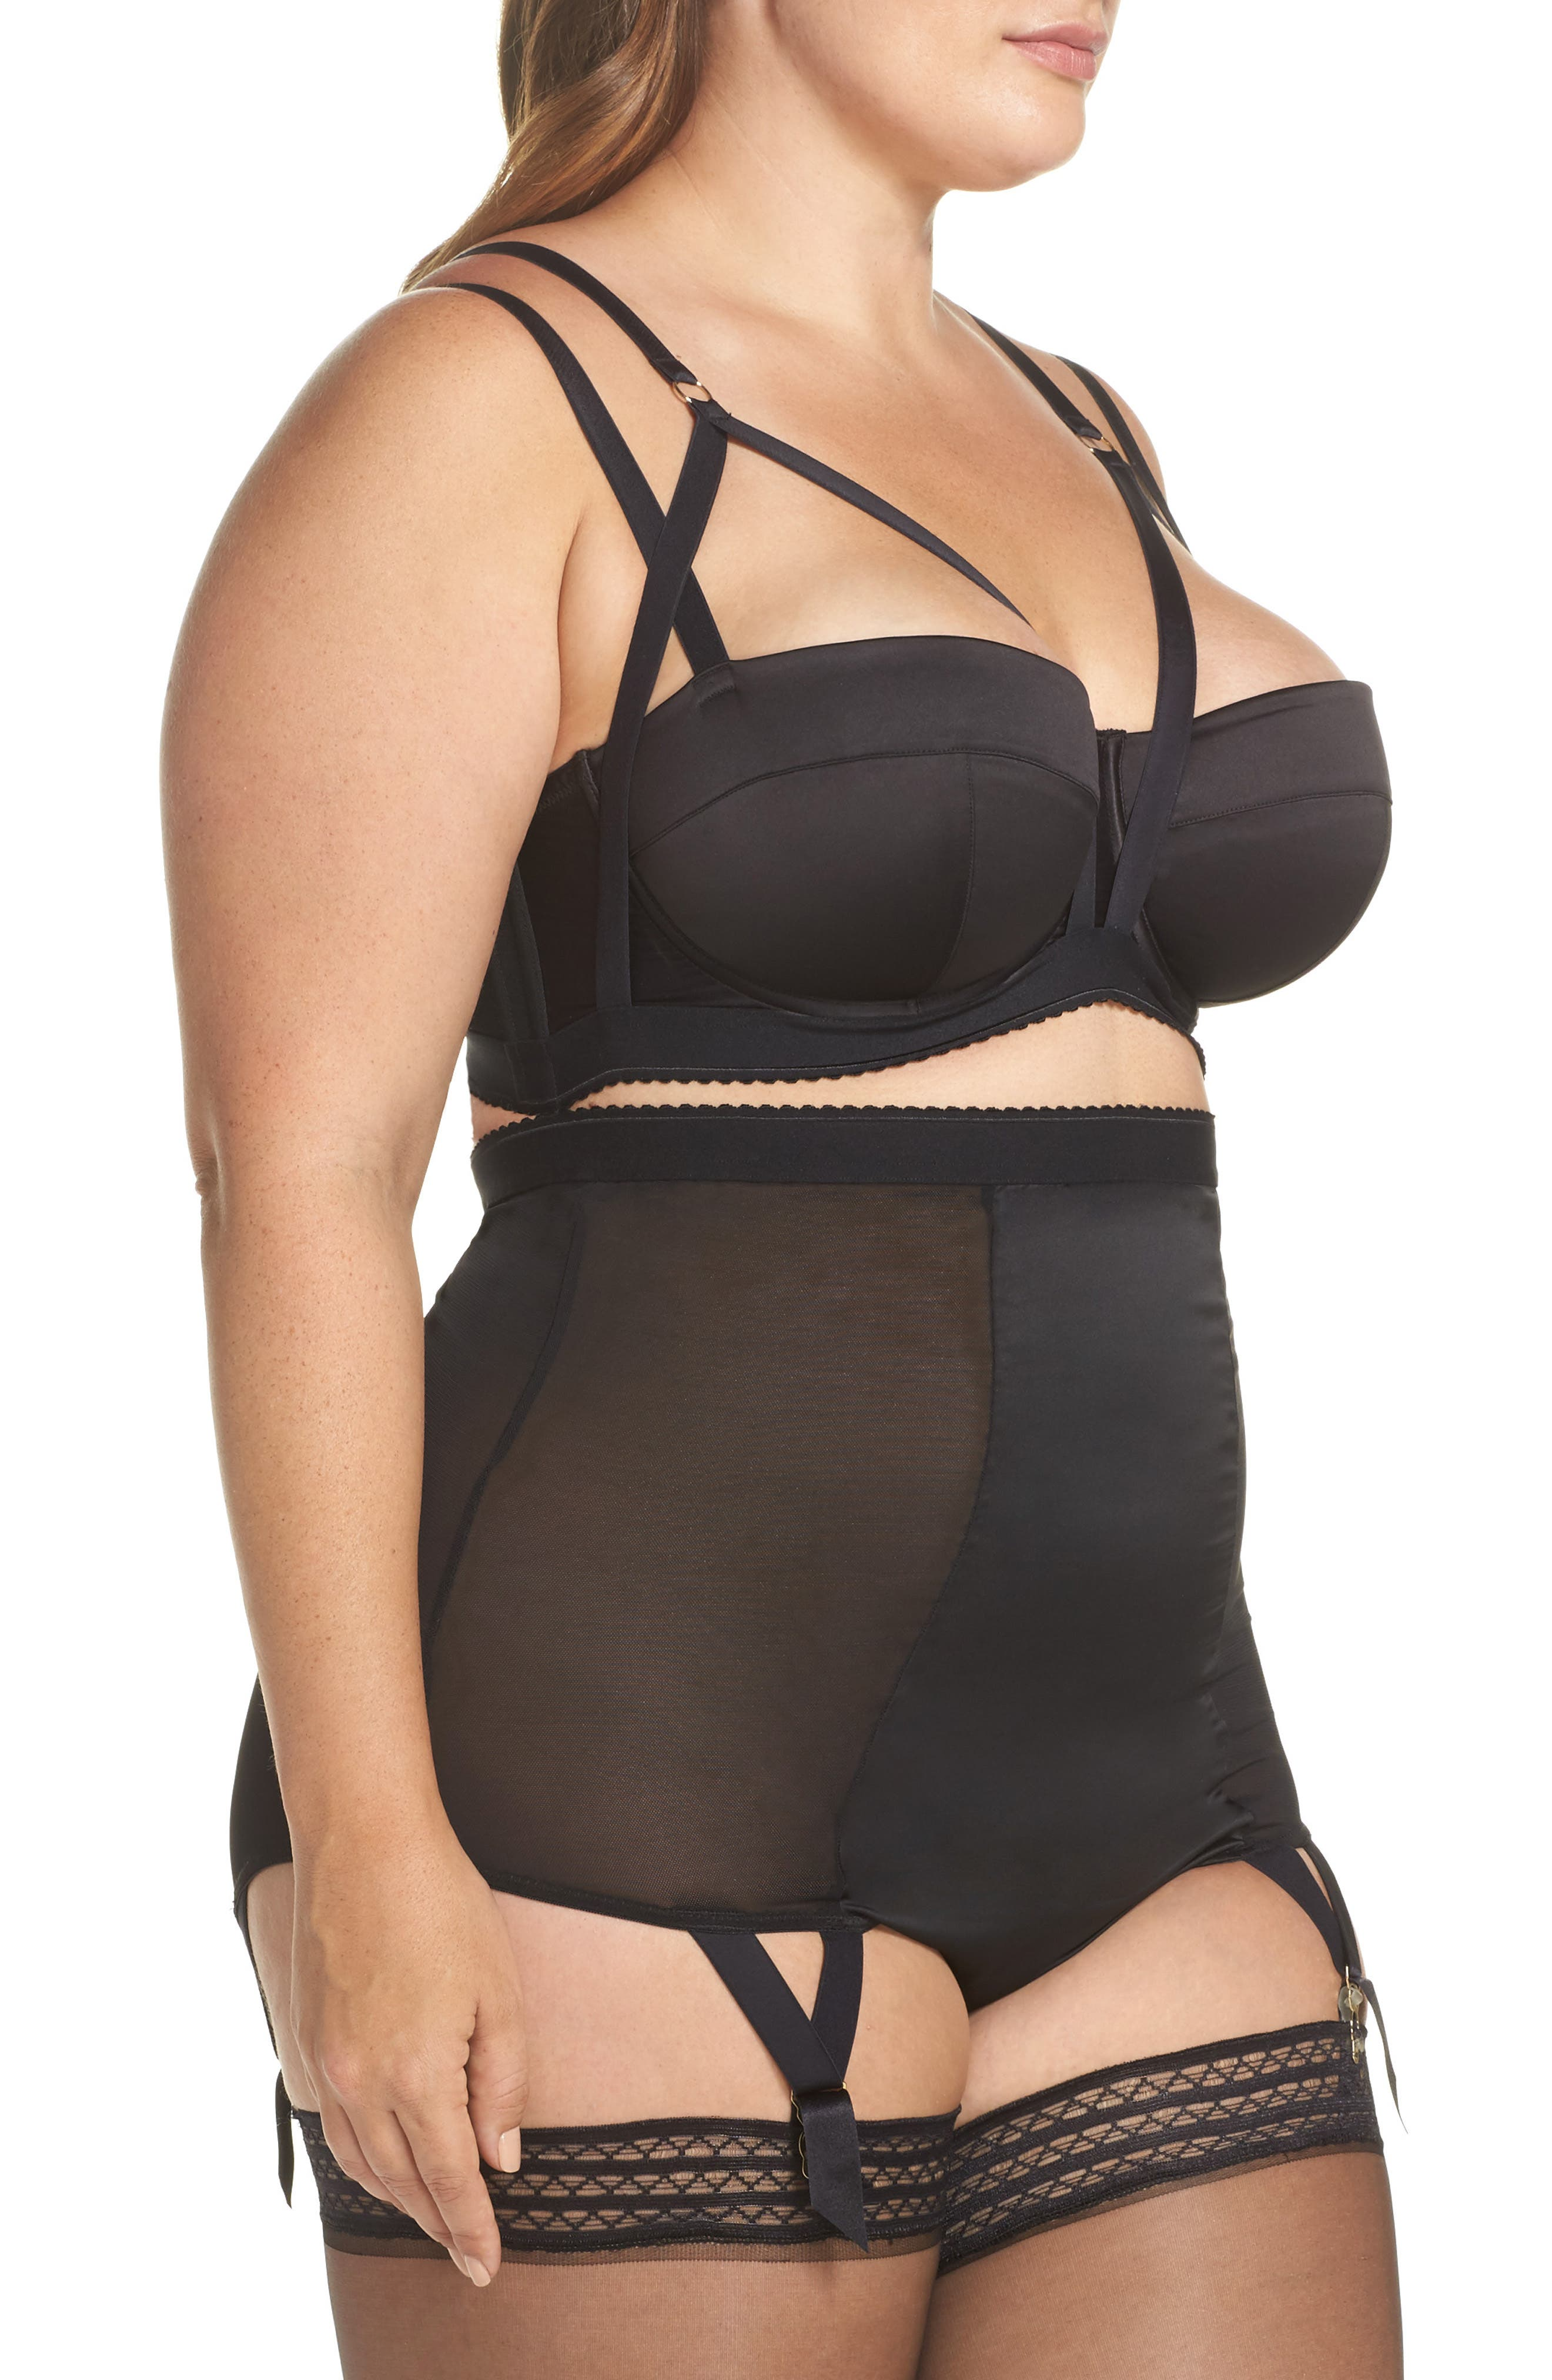 Playful Promies Candace Noir Strappy Underwire Bra,                             Alternate thumbnail 8, color,